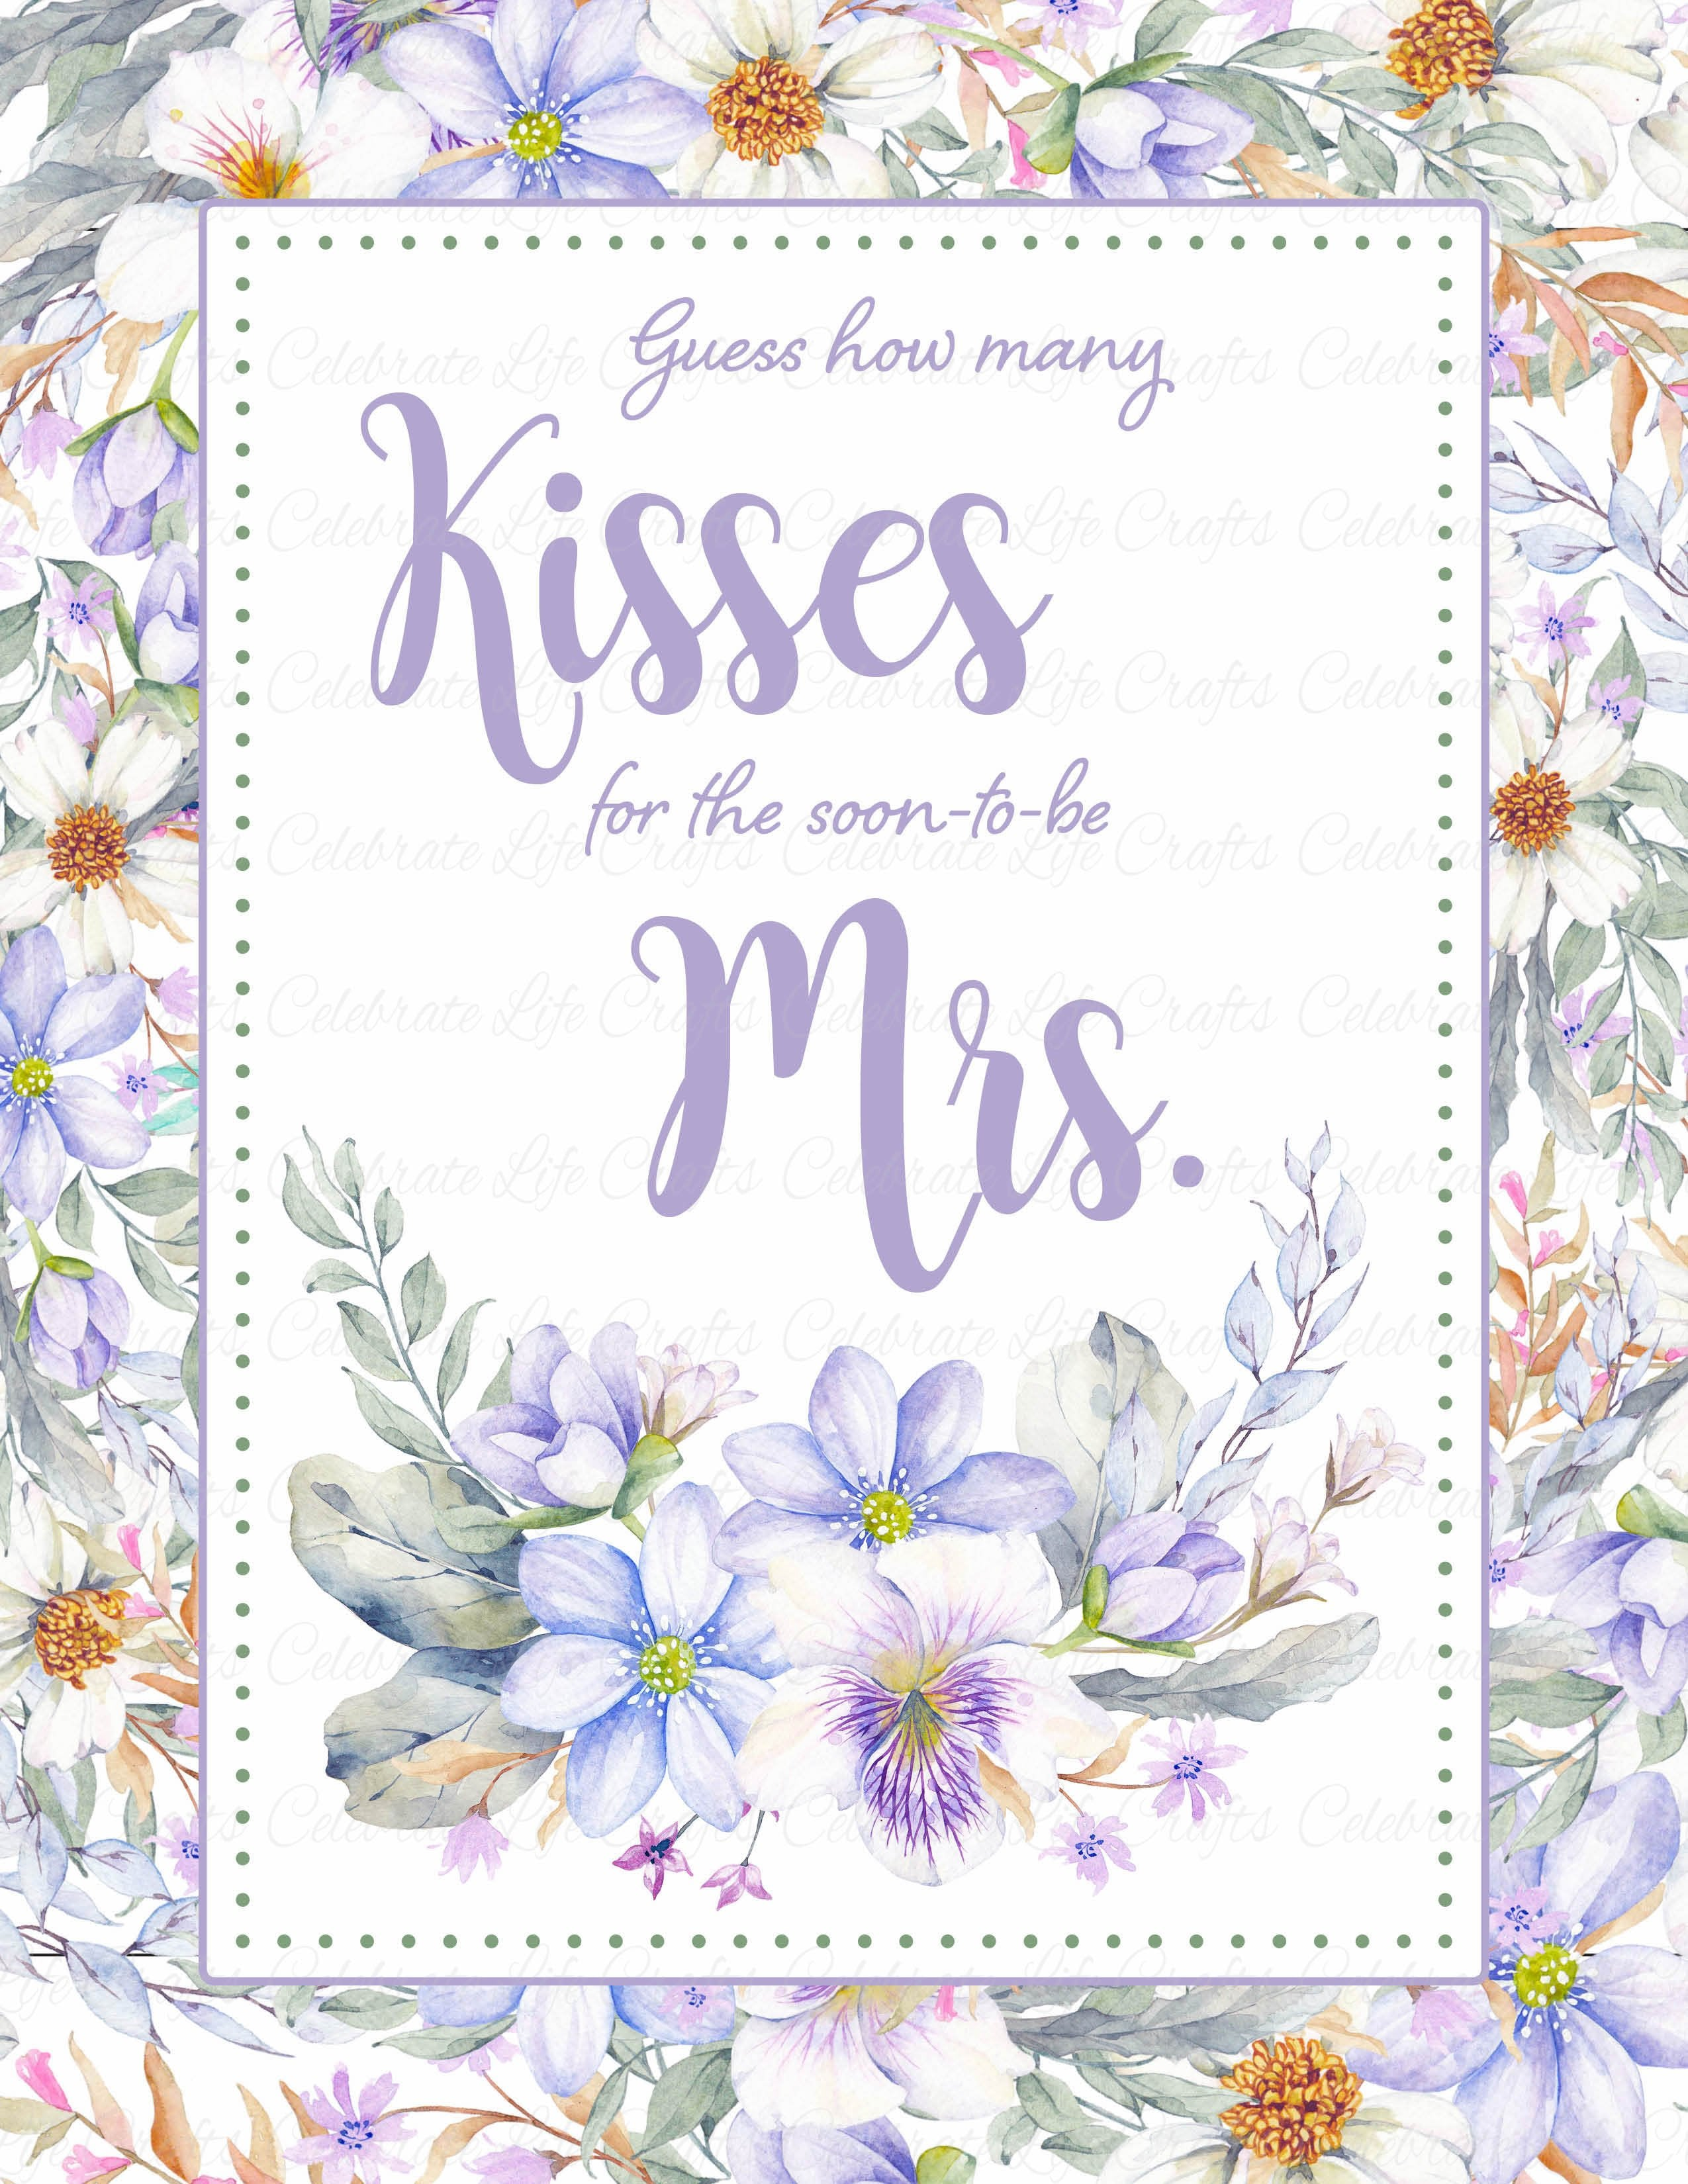 picture relating to Guess Who Cards Printable referred to as How Countless Kisses Bridal Shower Activity Indication and Guessing